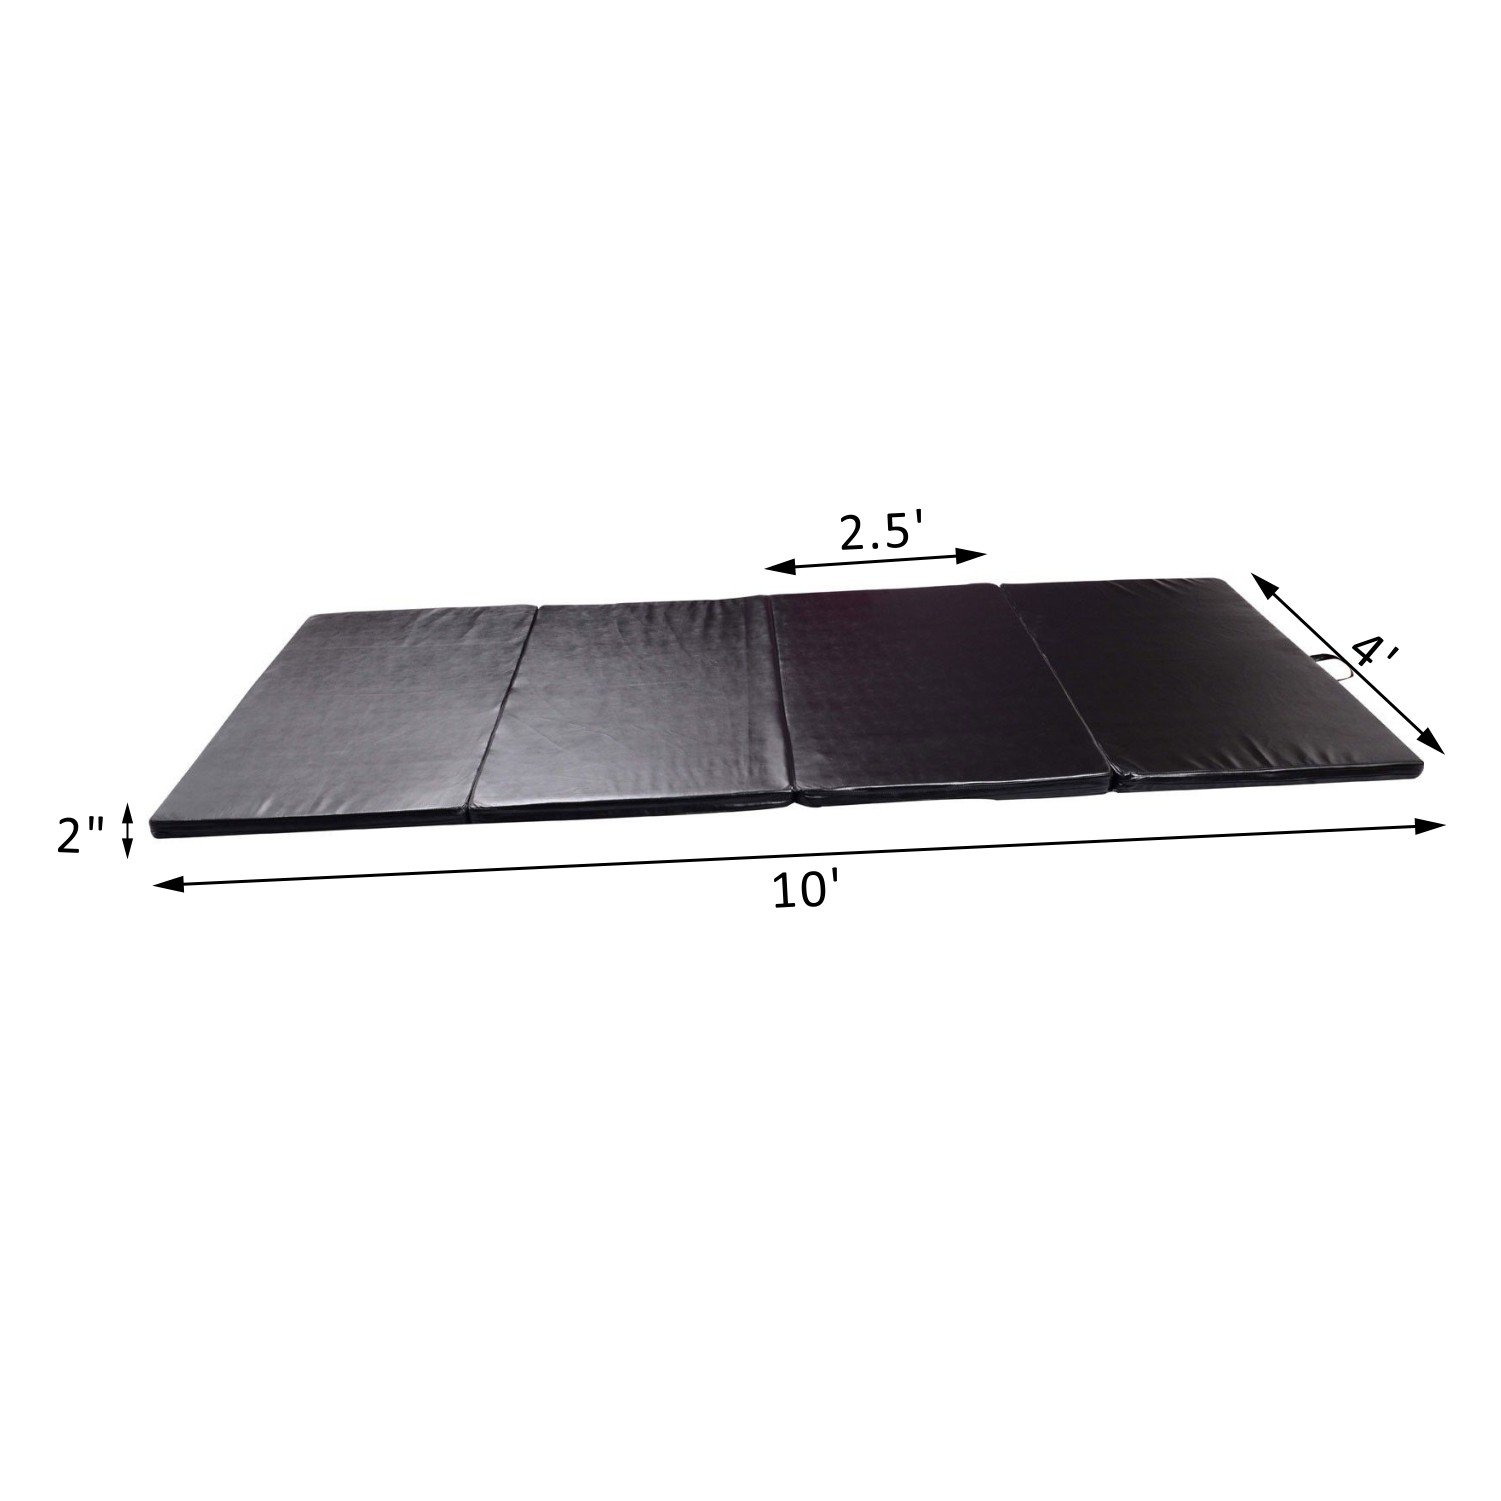 Black Folding Panel Gymnastics Mat 4' x 10' x 2'' Gym Fitness Exercise Stretching Yoga Tumbling With Ebook by MRT SUPPLY